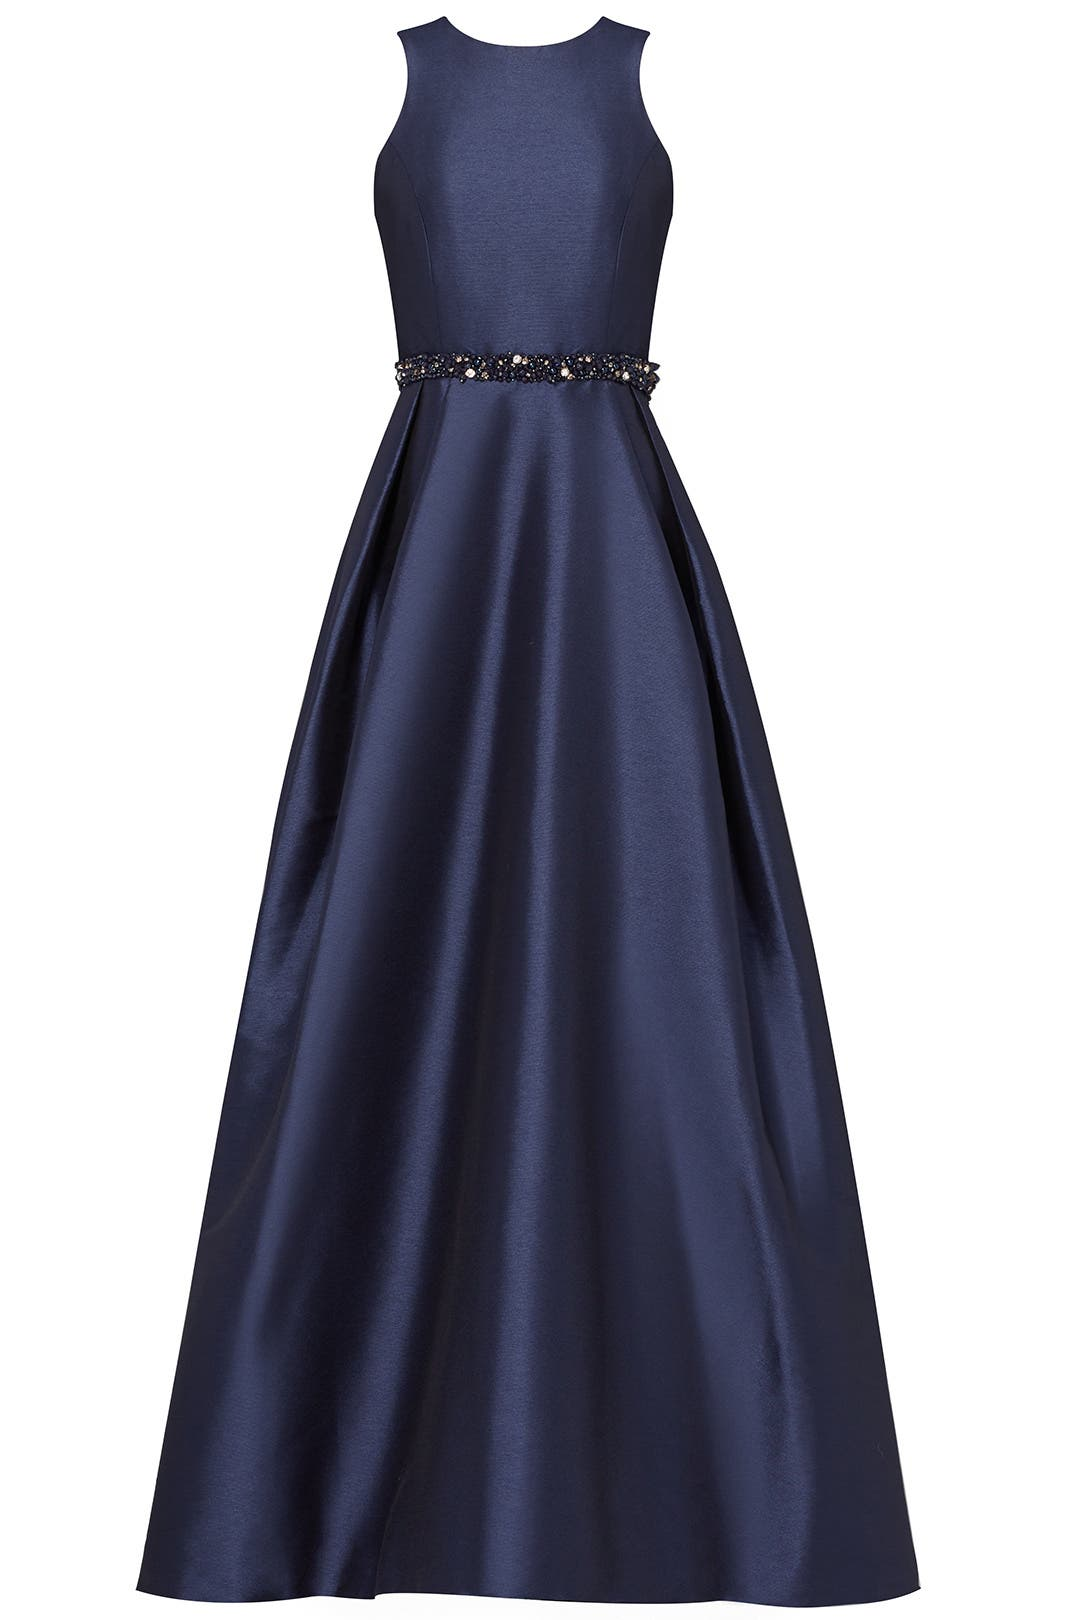 Navy Jadore Gown by ML Monique Lhuillier for $95 | Rent the Runway